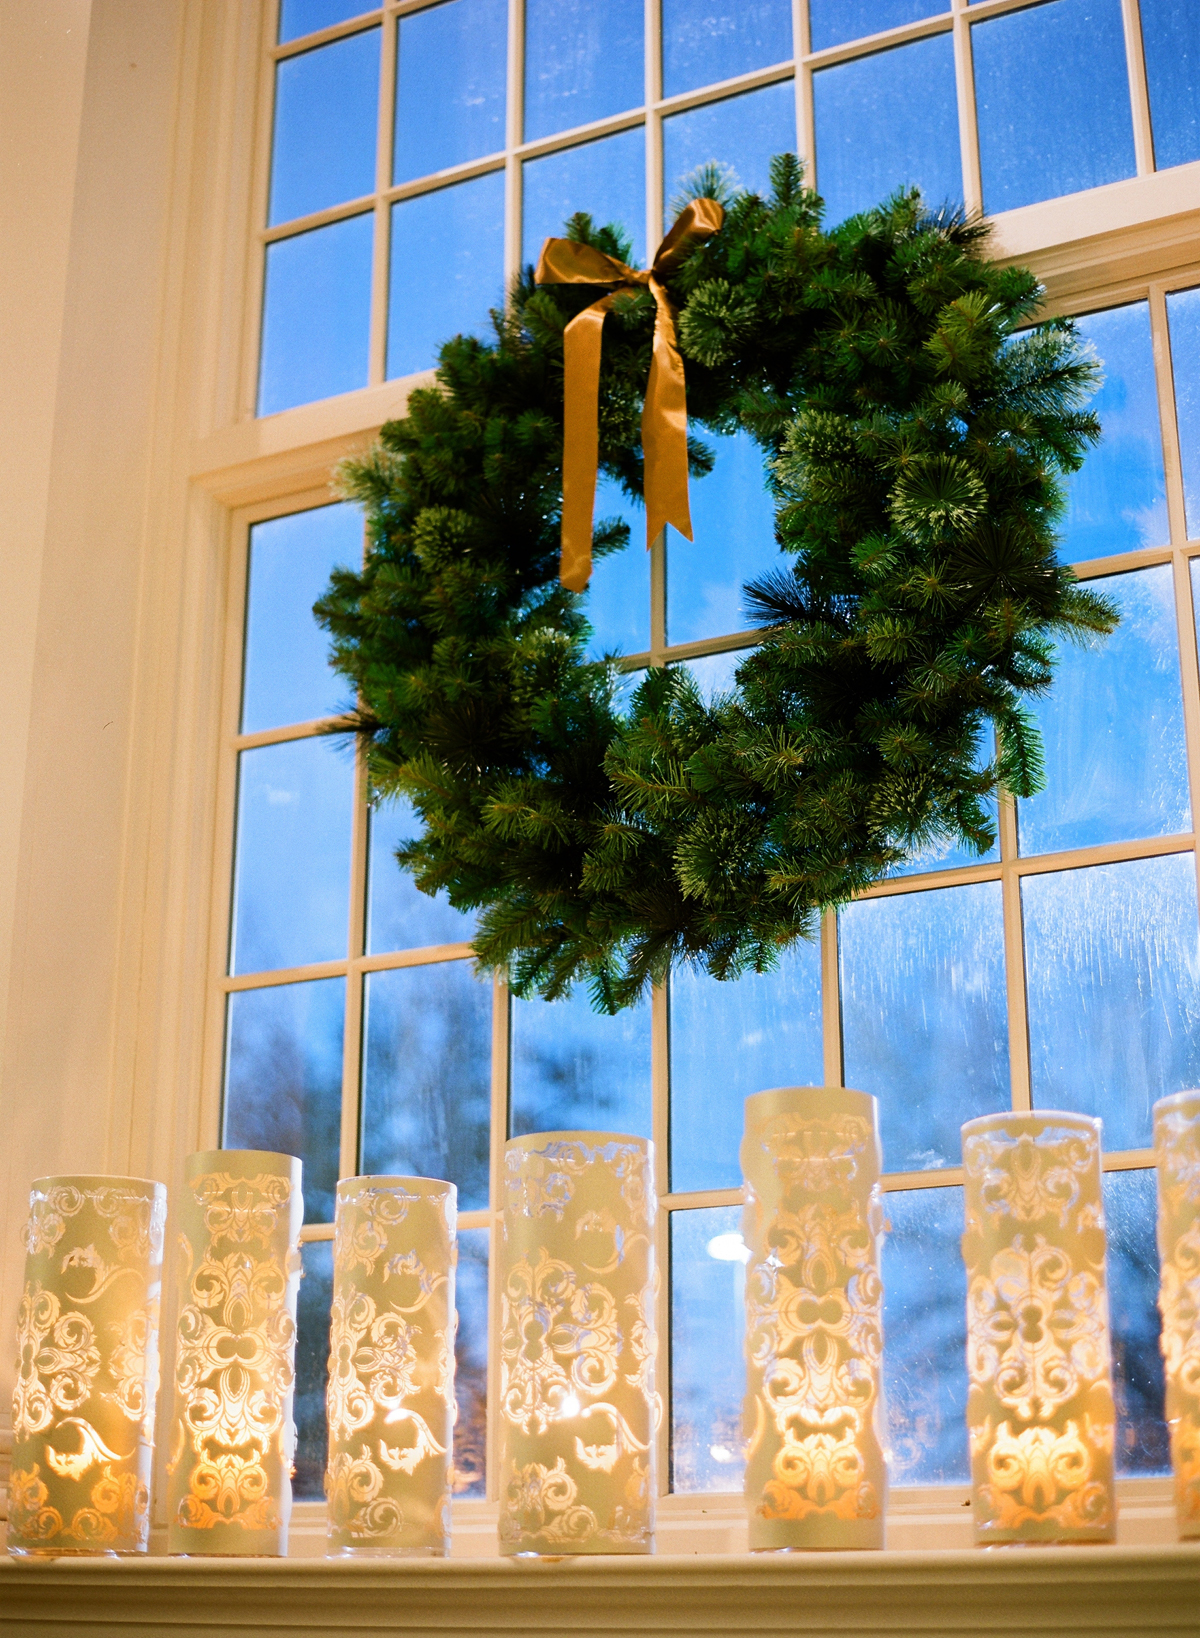 Christmas New Year's Eve wedding ideas greenery evergreen wreath in church with candles